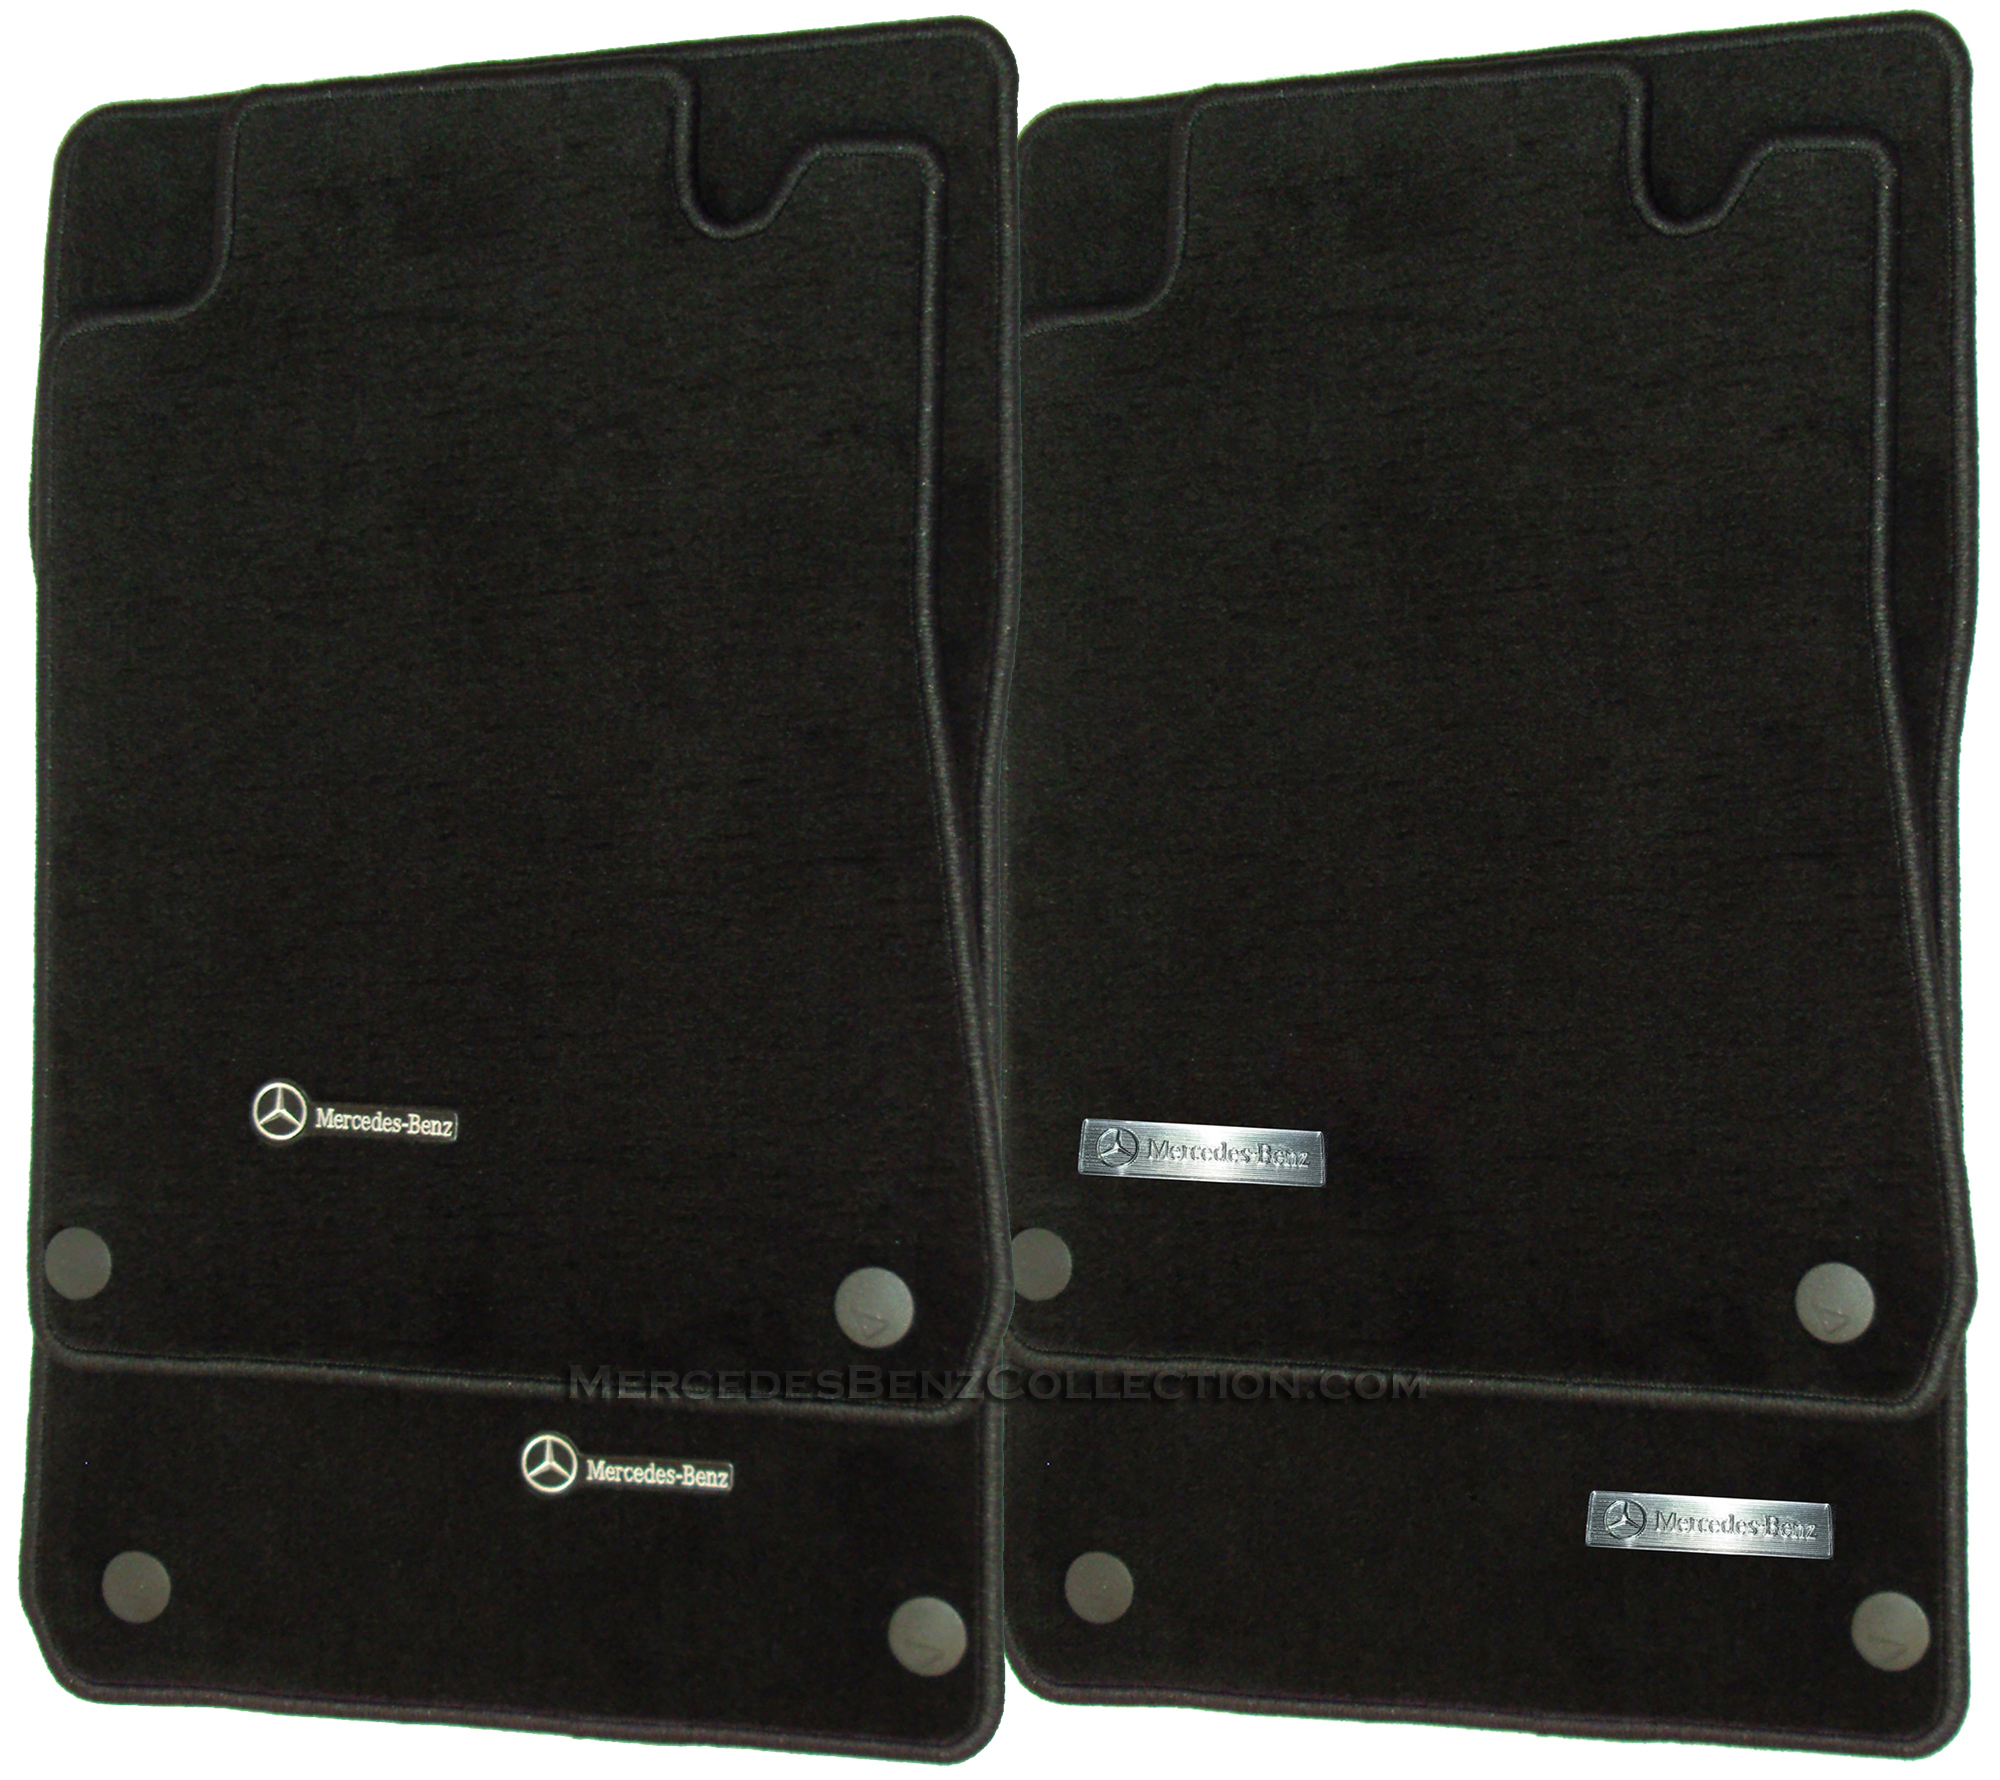 mercedes benz genuine oem carpeted floor mats c class rwd 2001 to 2007. Cars Review. Best American Auto & Cars Review